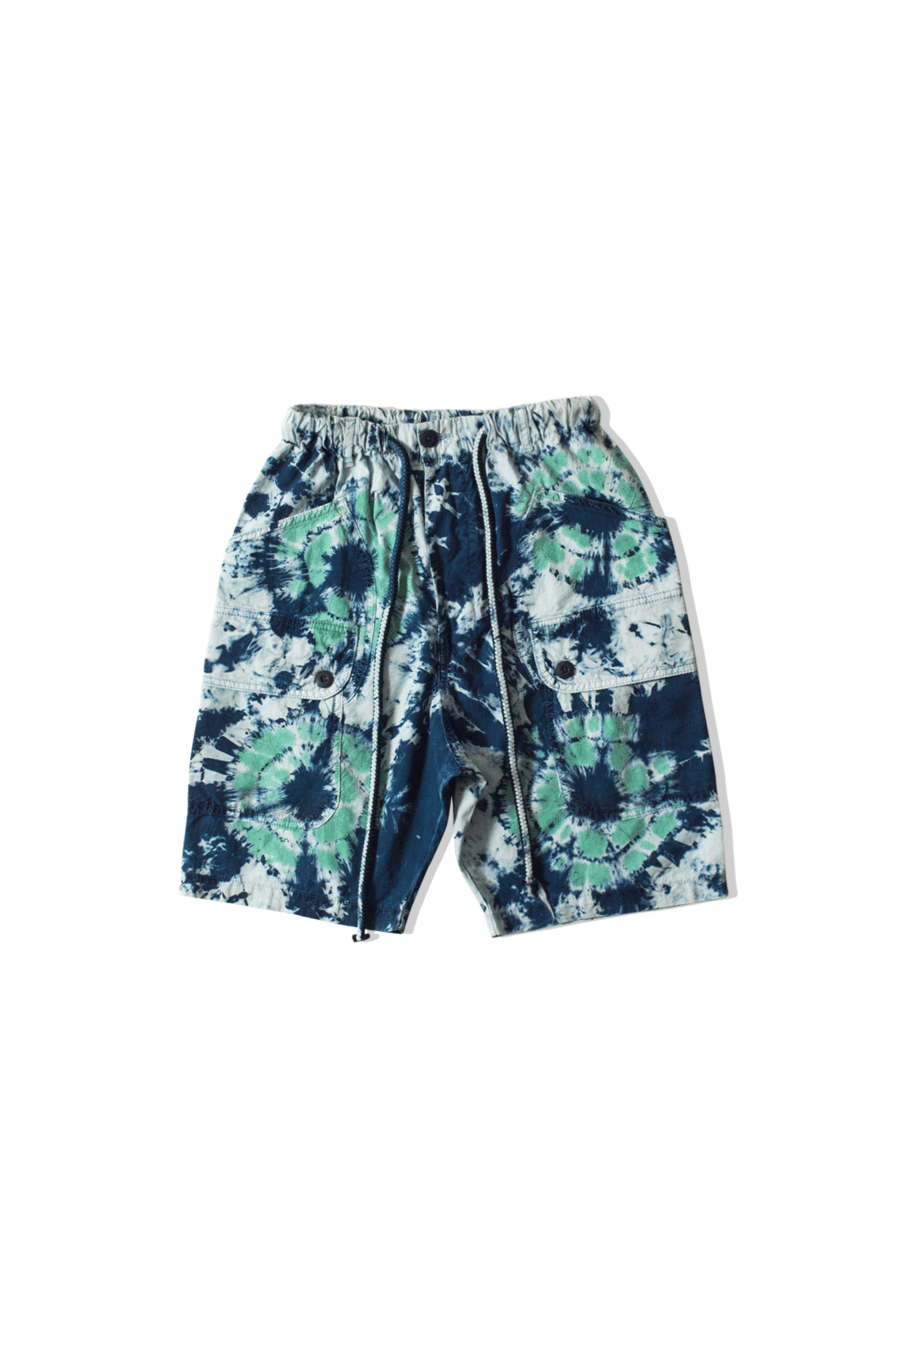 Dr. Collectors Shorts Short Shibori Blue P30SHORTS#HIBORI#BLUE#XS - One Block Down